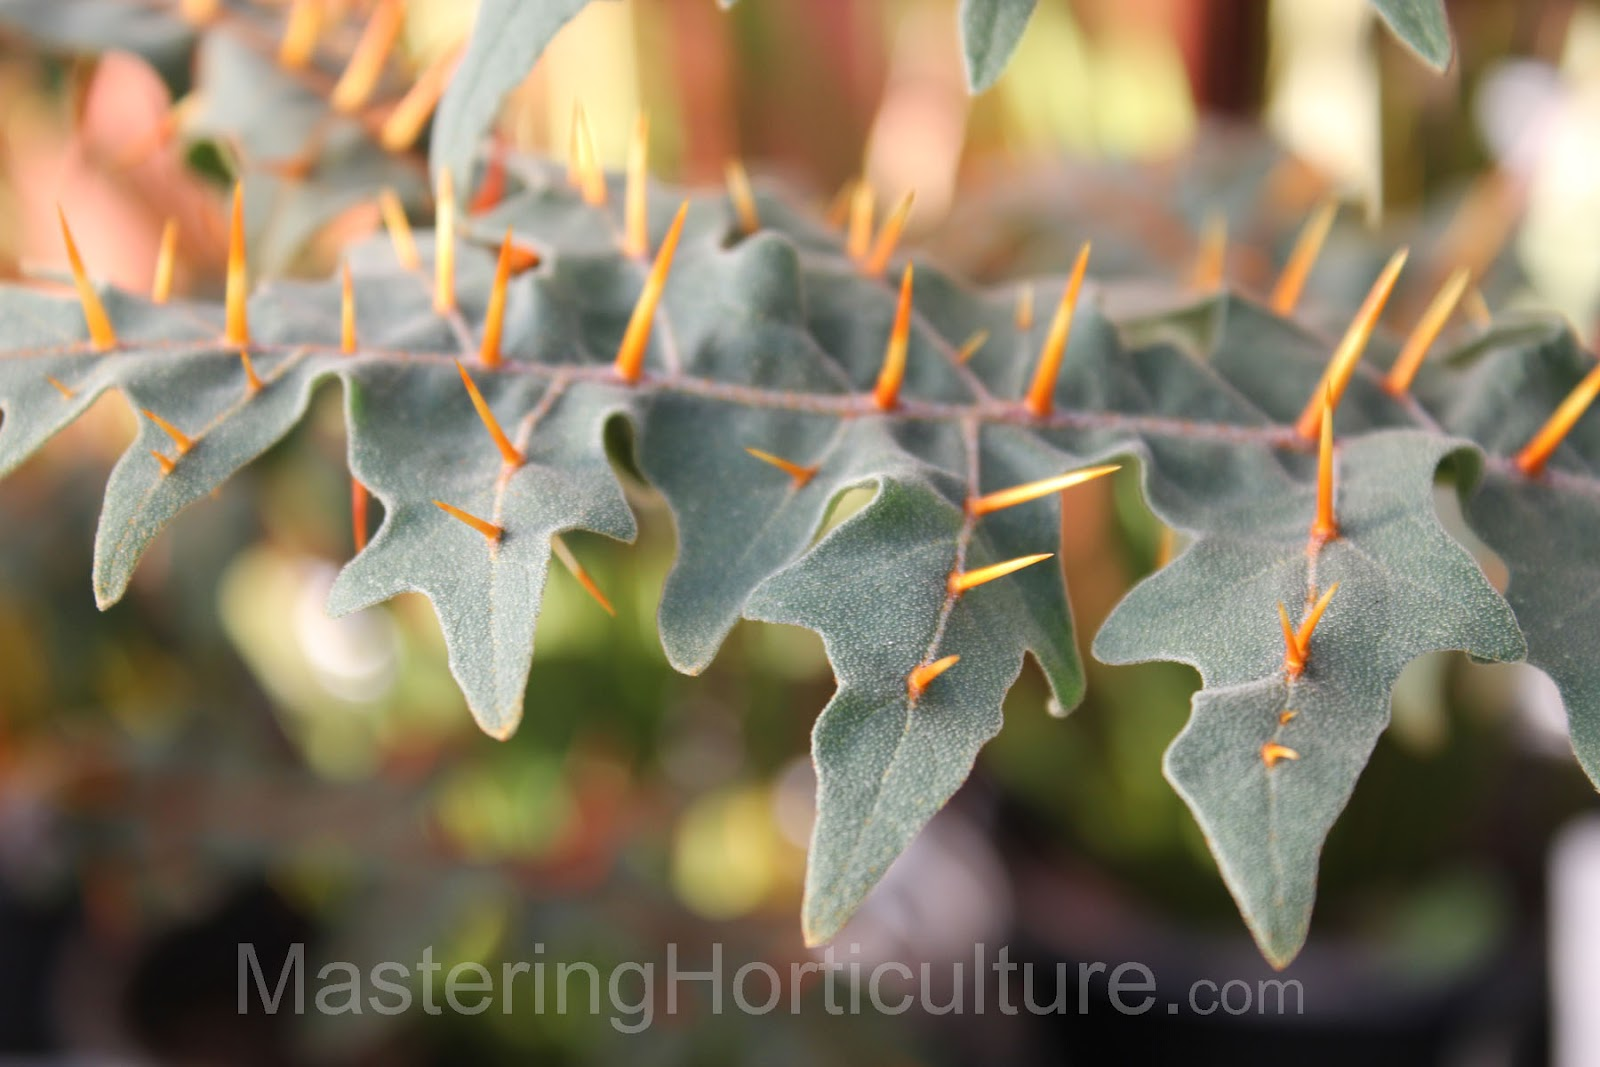 Mastering Horticulture: HortiCOOLture - Armored Plant on